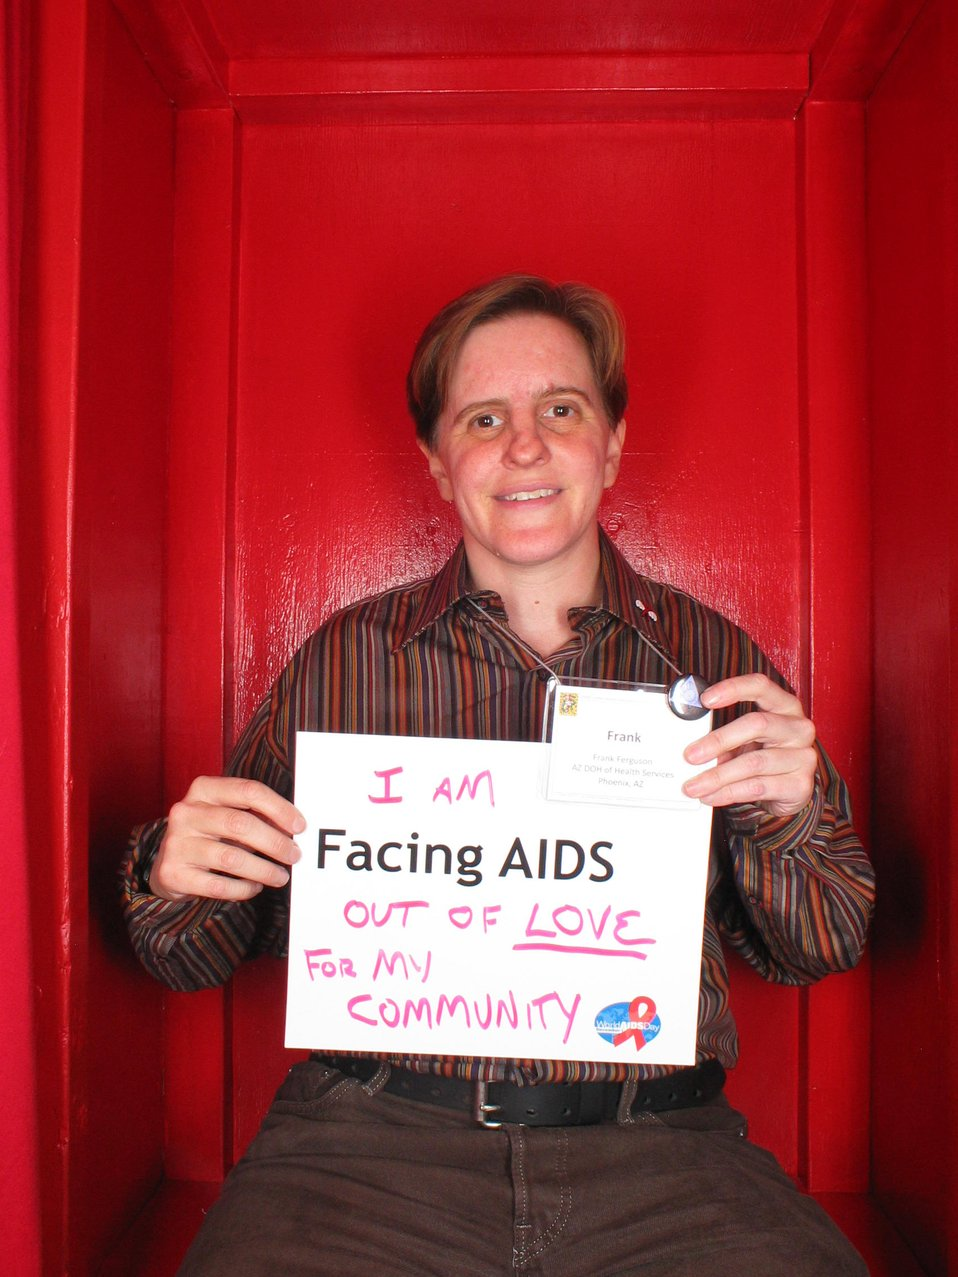 I am Facing AIDS out of LOVE for my community.